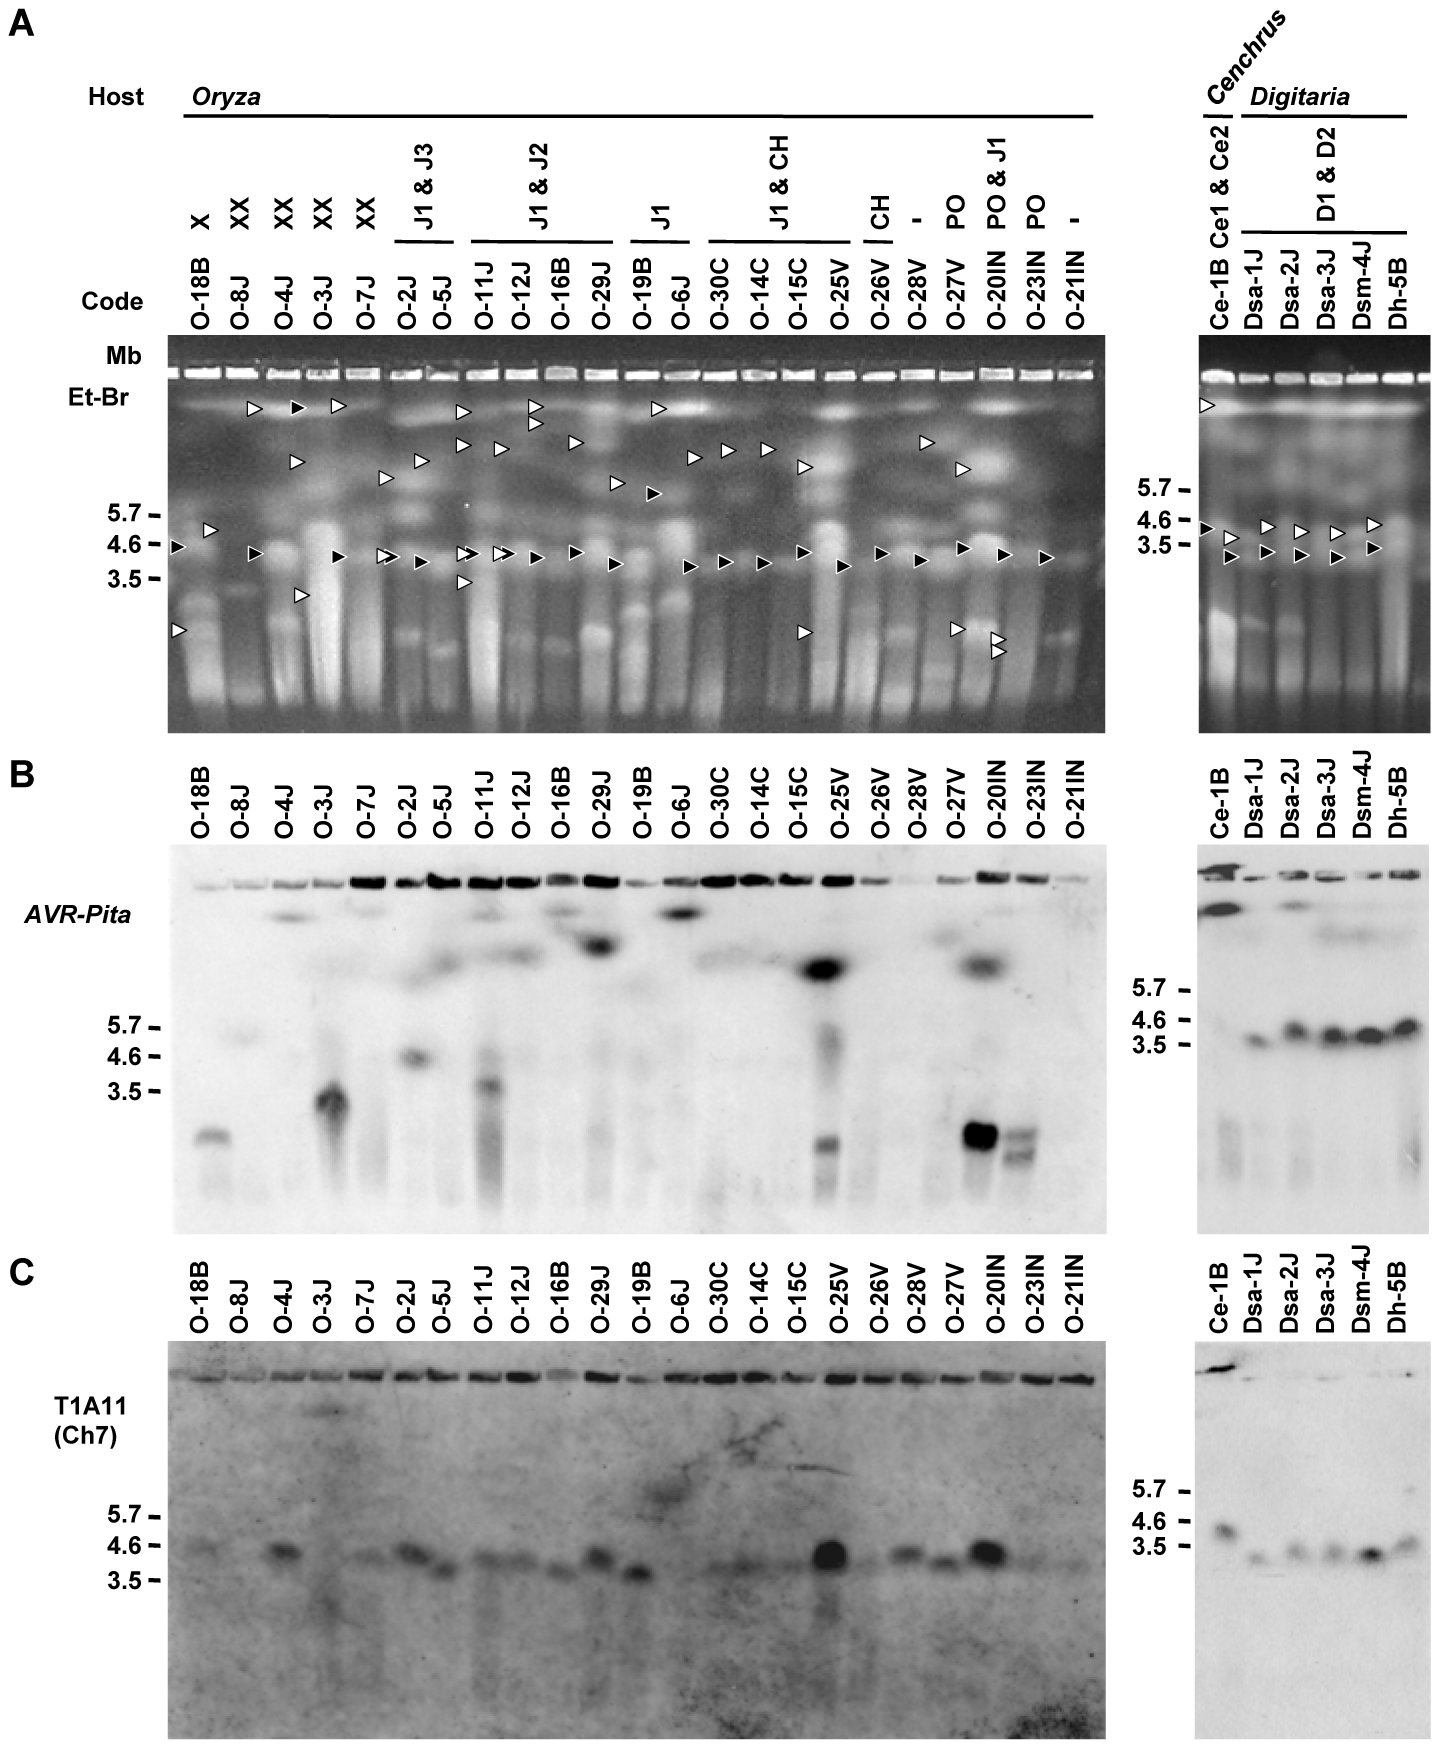 CHEF-Southern analyses of chromosomal locations of <i>AVR-Pita</i> homologs in <i>Pyricularia</i> isolates.